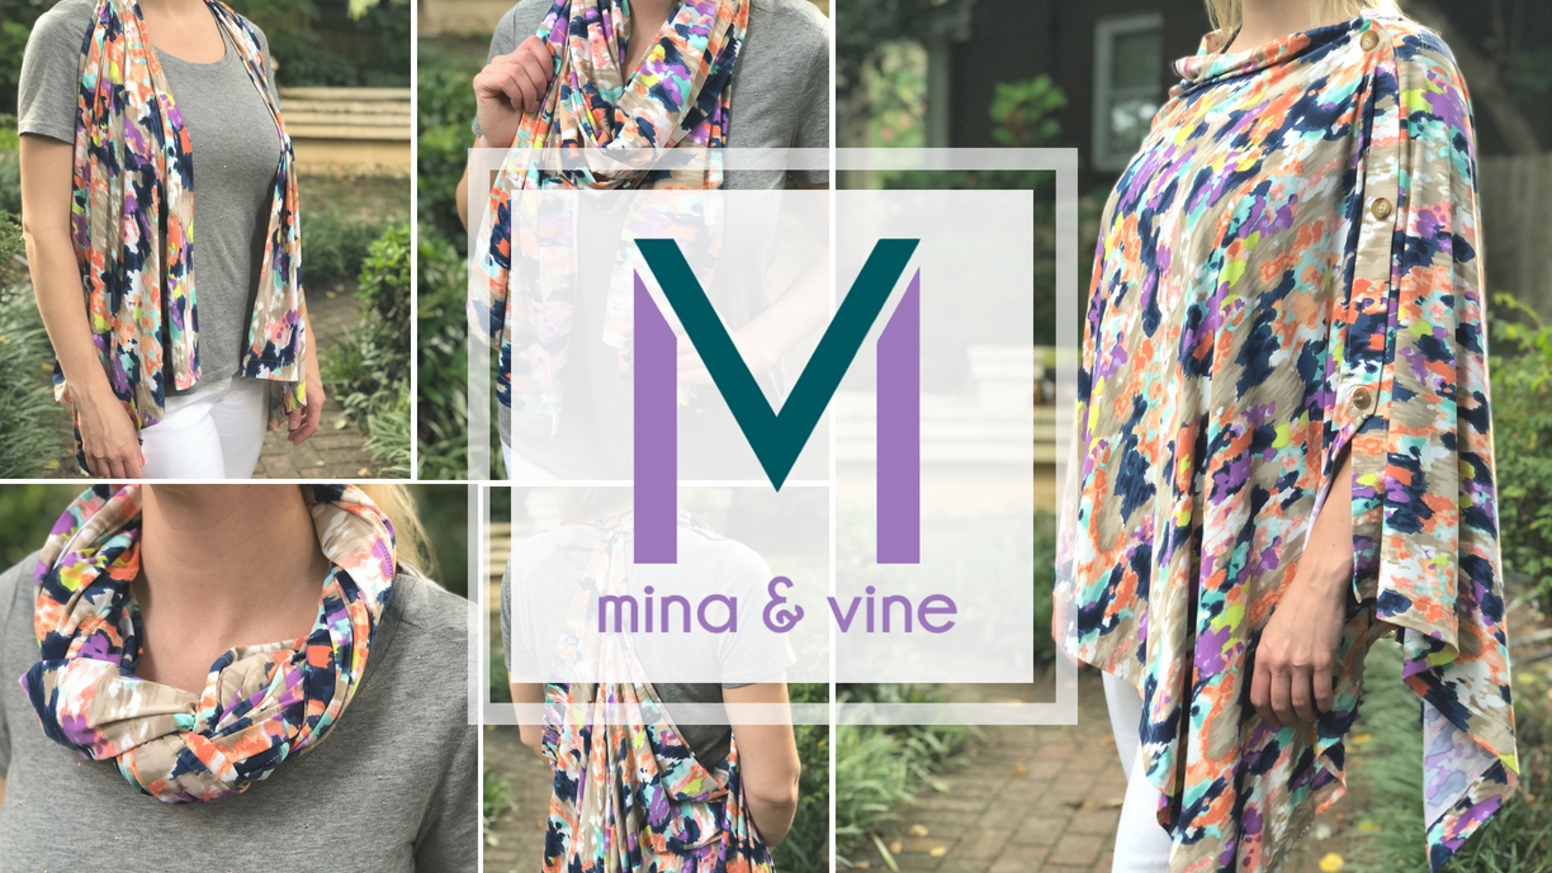 The only nursing scarf to use smart fabric to cool your body, magnetic fasteners for easy closure, & modern prints to keep you stylish.